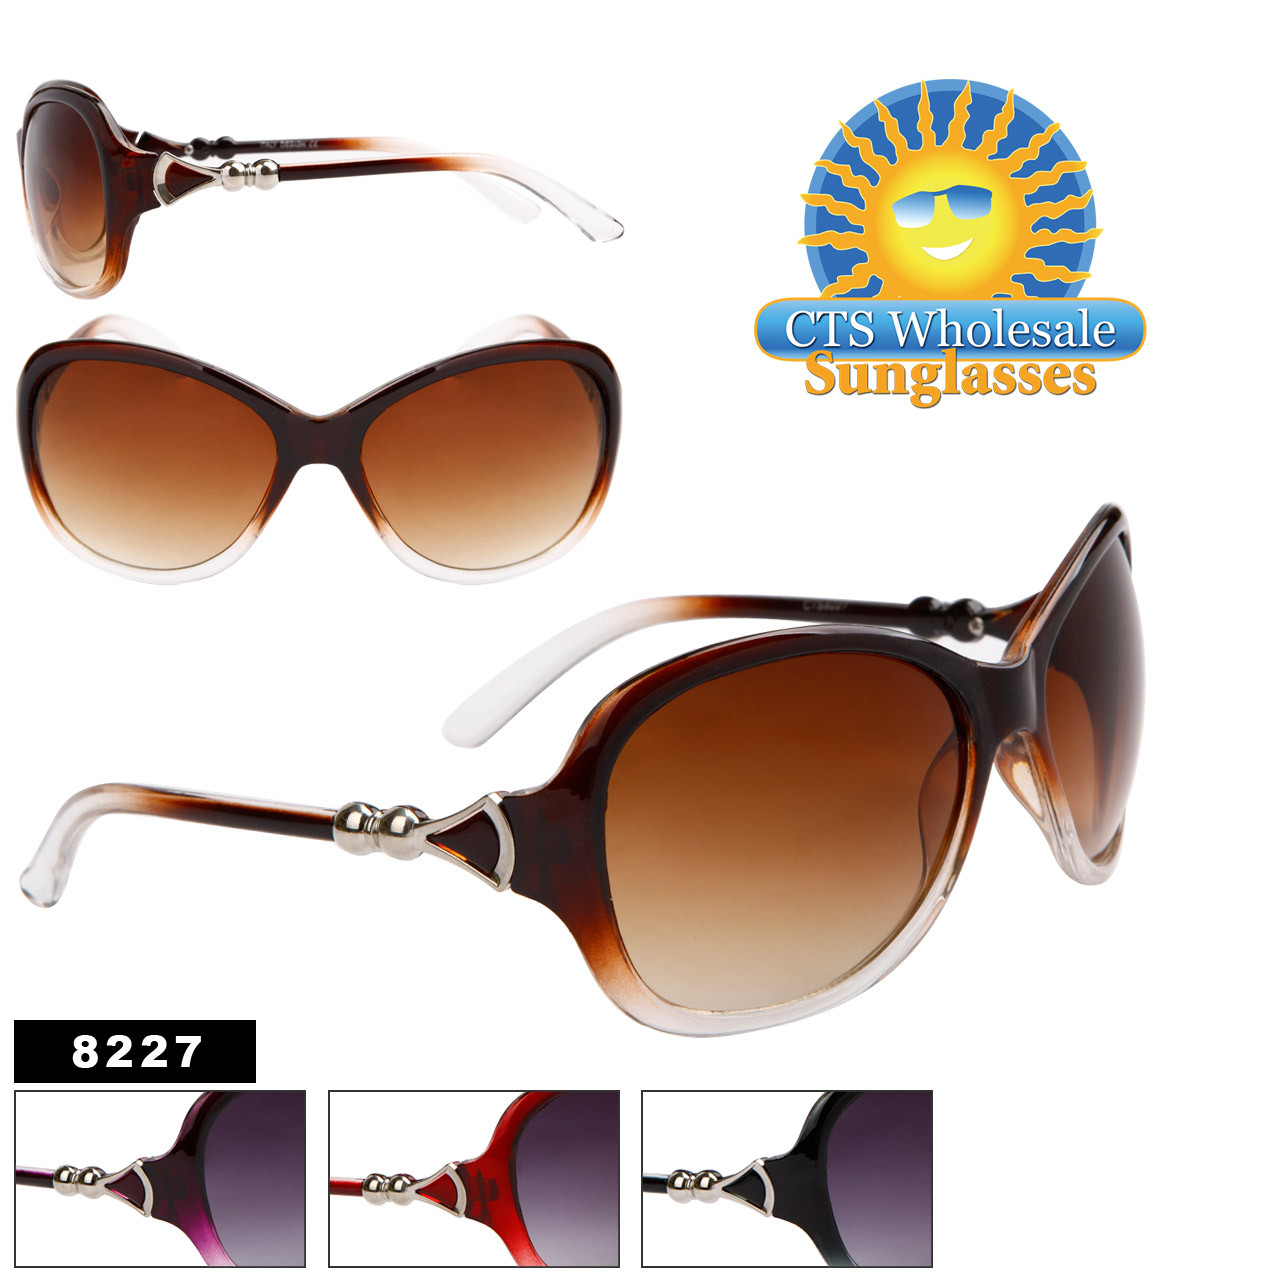 Women's Wholesale Sunglasses - 8227